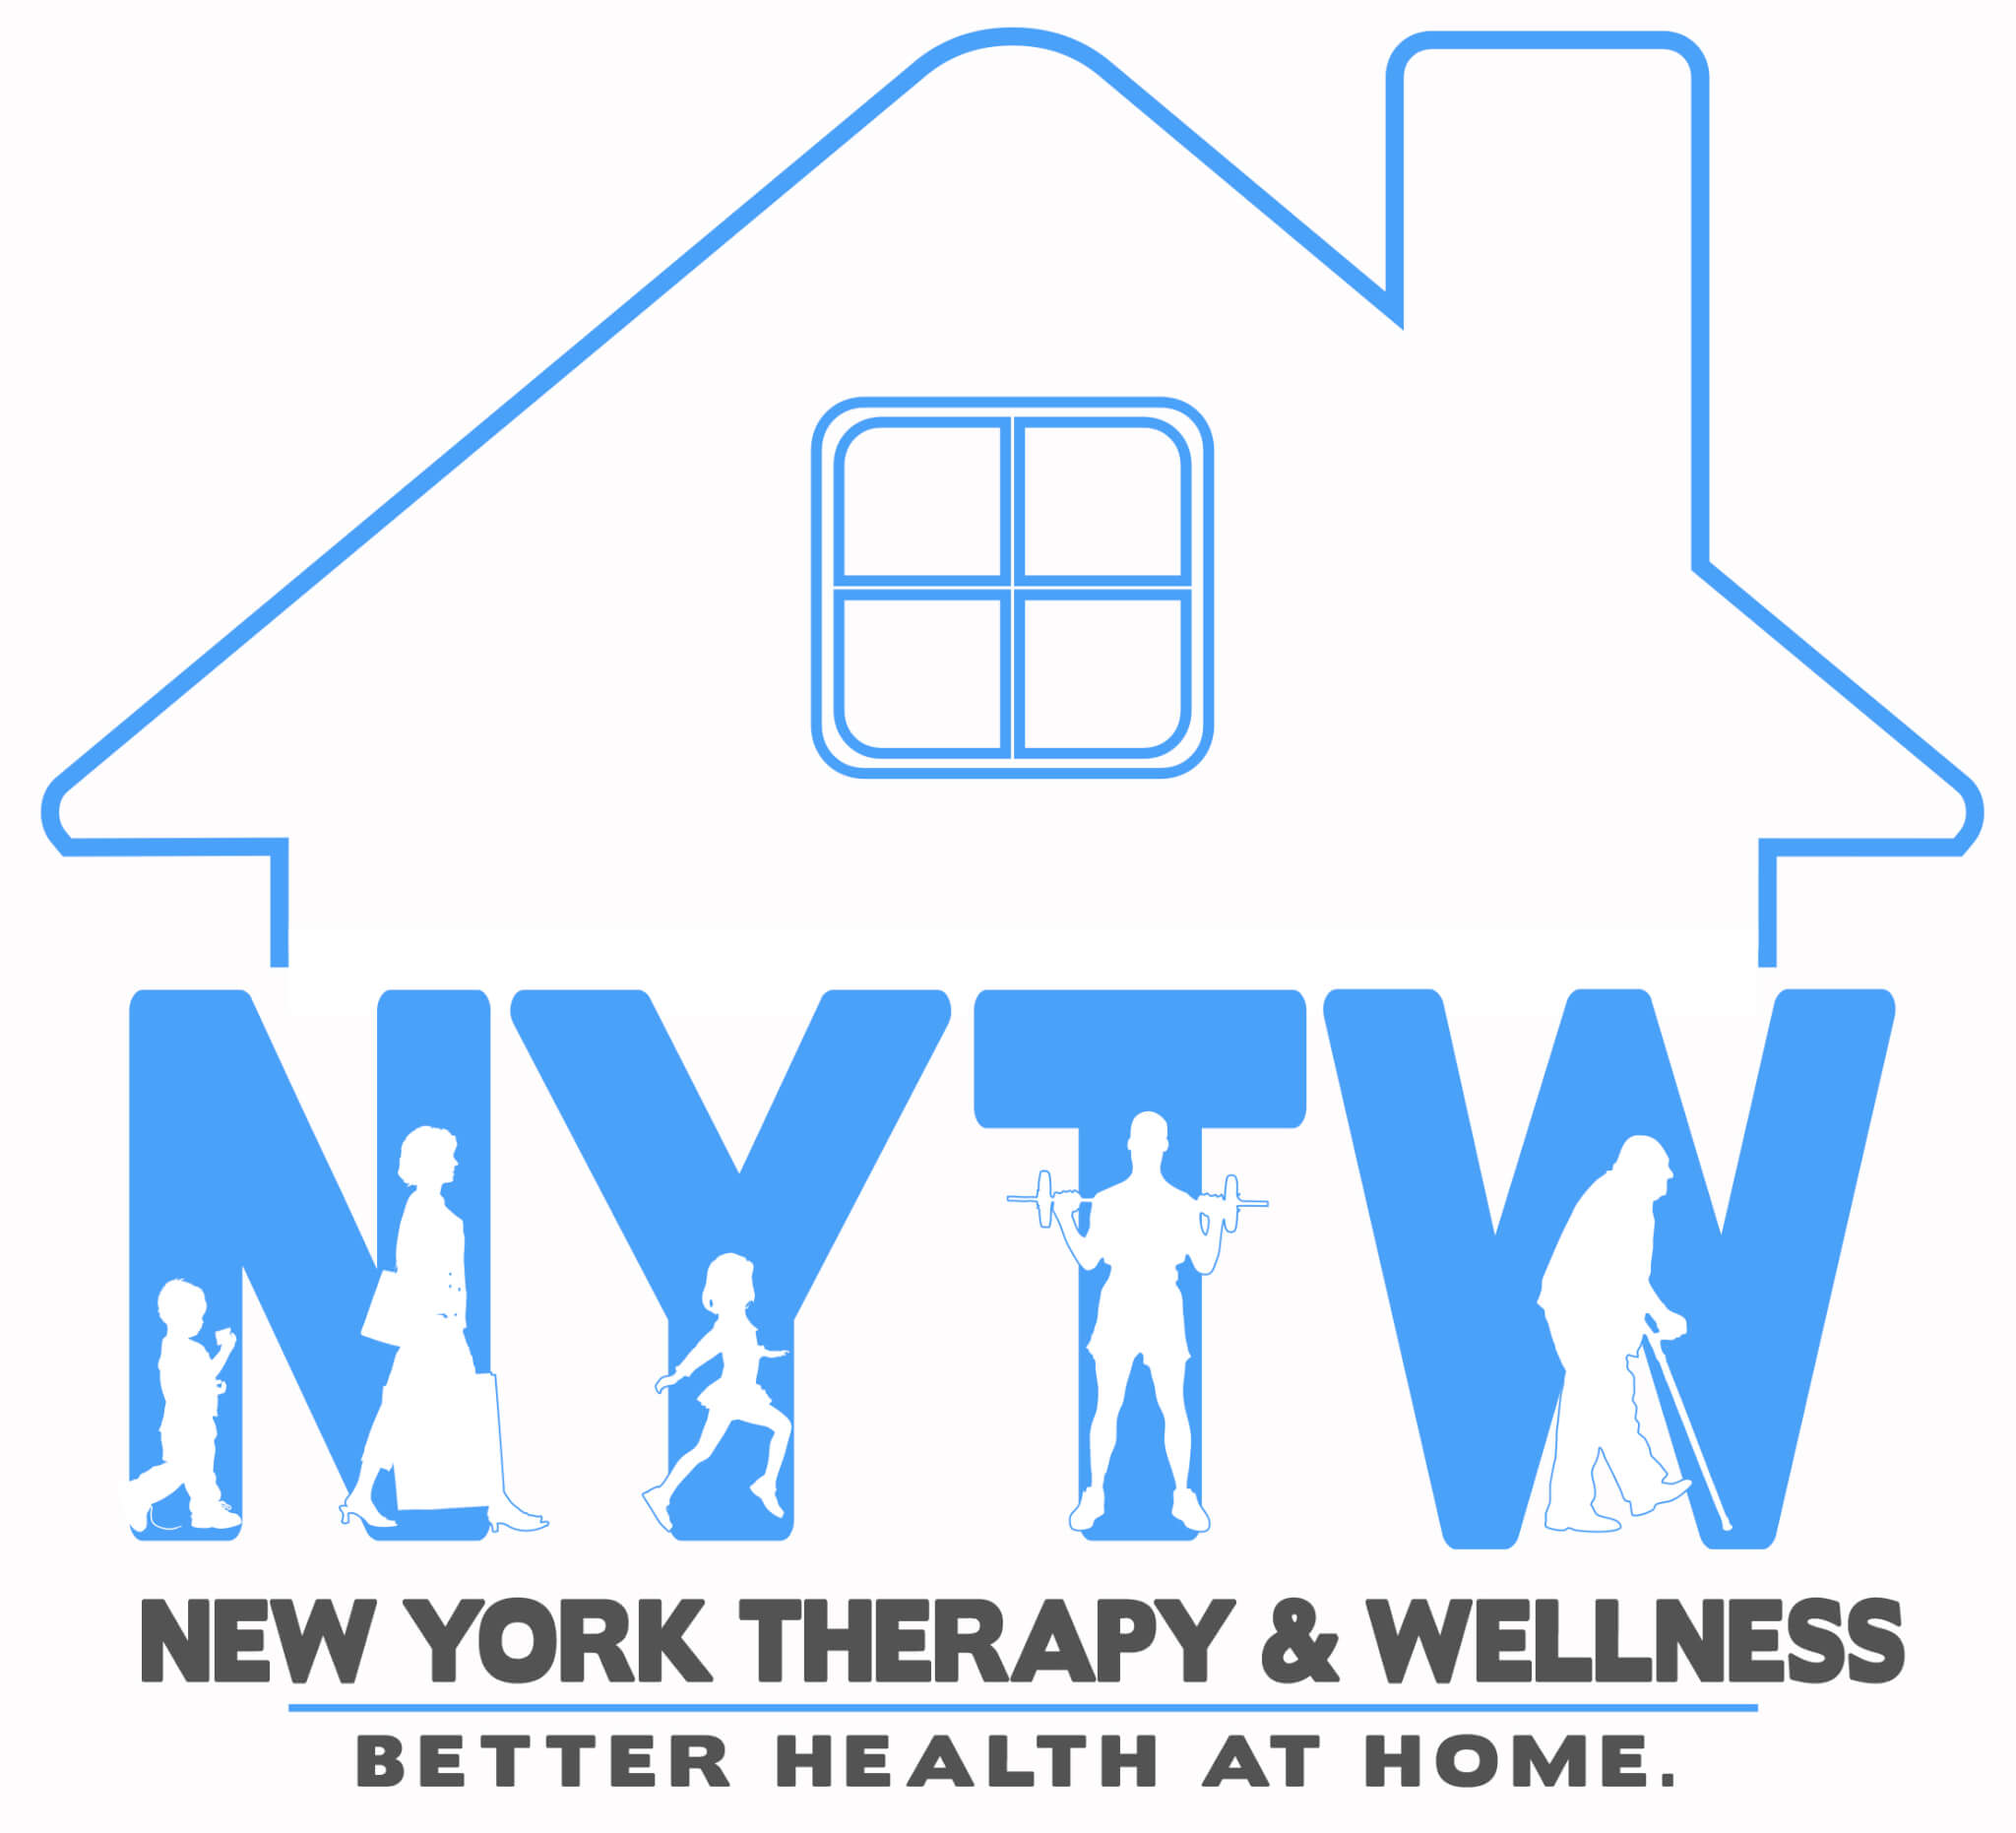 New York Therapy and Wellness